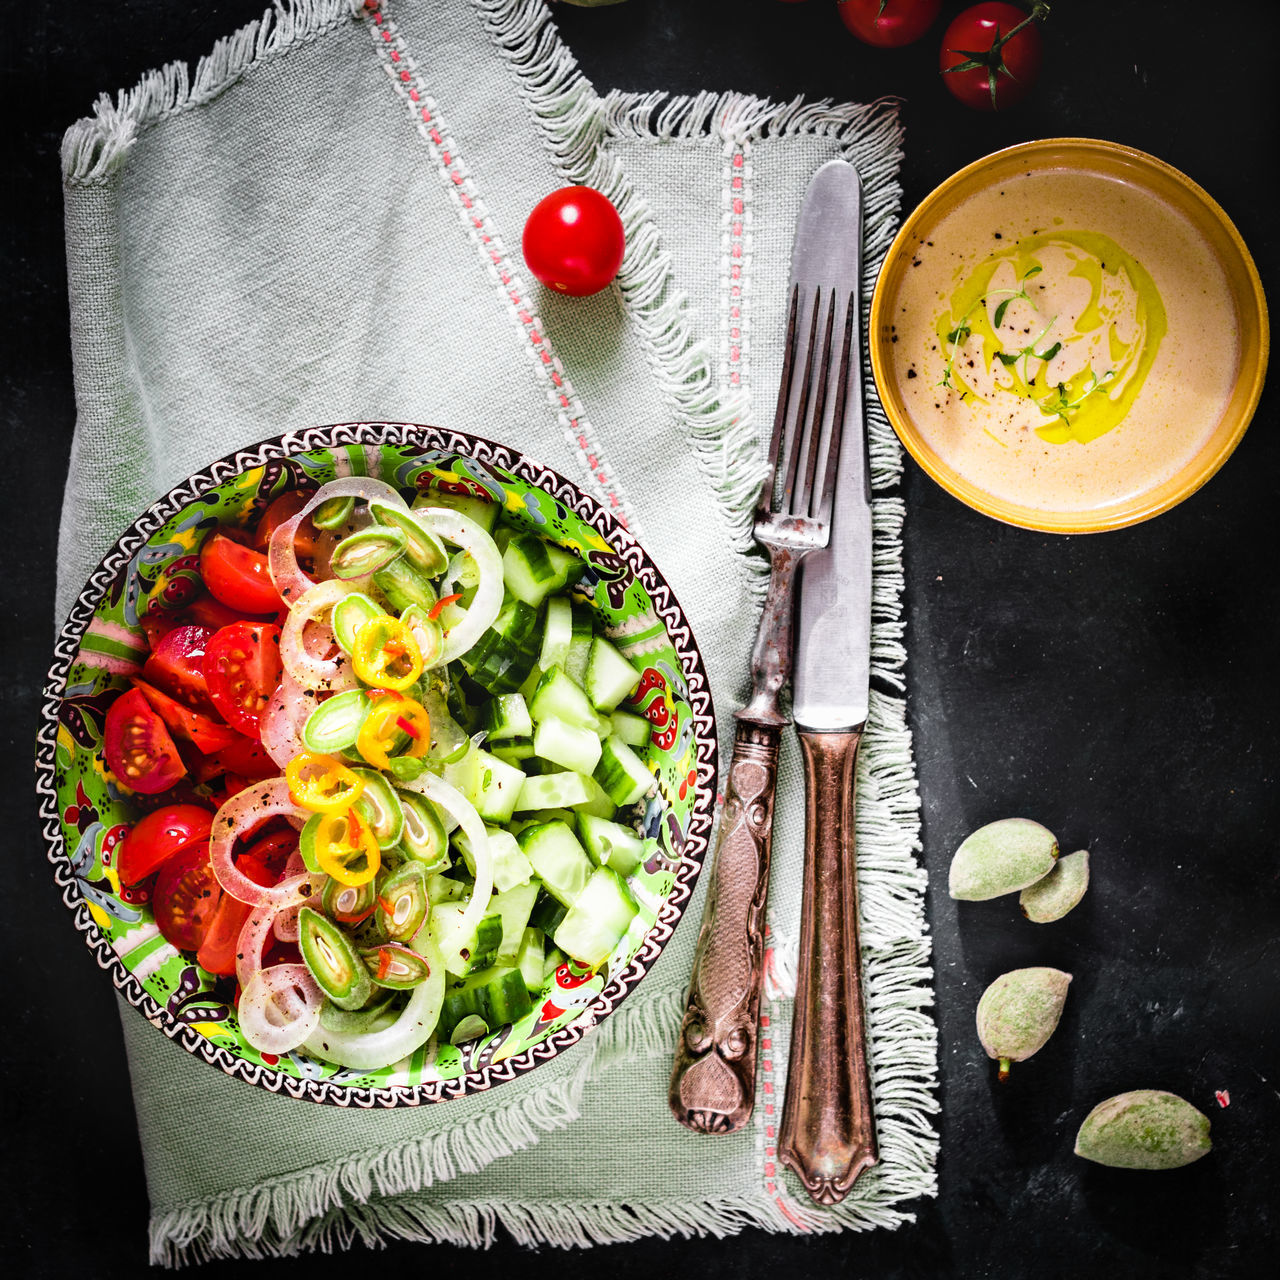 Tomato and cucumber salad with green almonds and tahini dressing. Close-up Cucumber Day Dieting Directly Above Food Food And Drink Fork Freshness Fruit Healthy Eating Healthy Lifestyle High Angle View Indoors  Lettuce Meal No People Plate Ready-to-eat Salad SLICE Tomato Vegetable Vegetarian Food